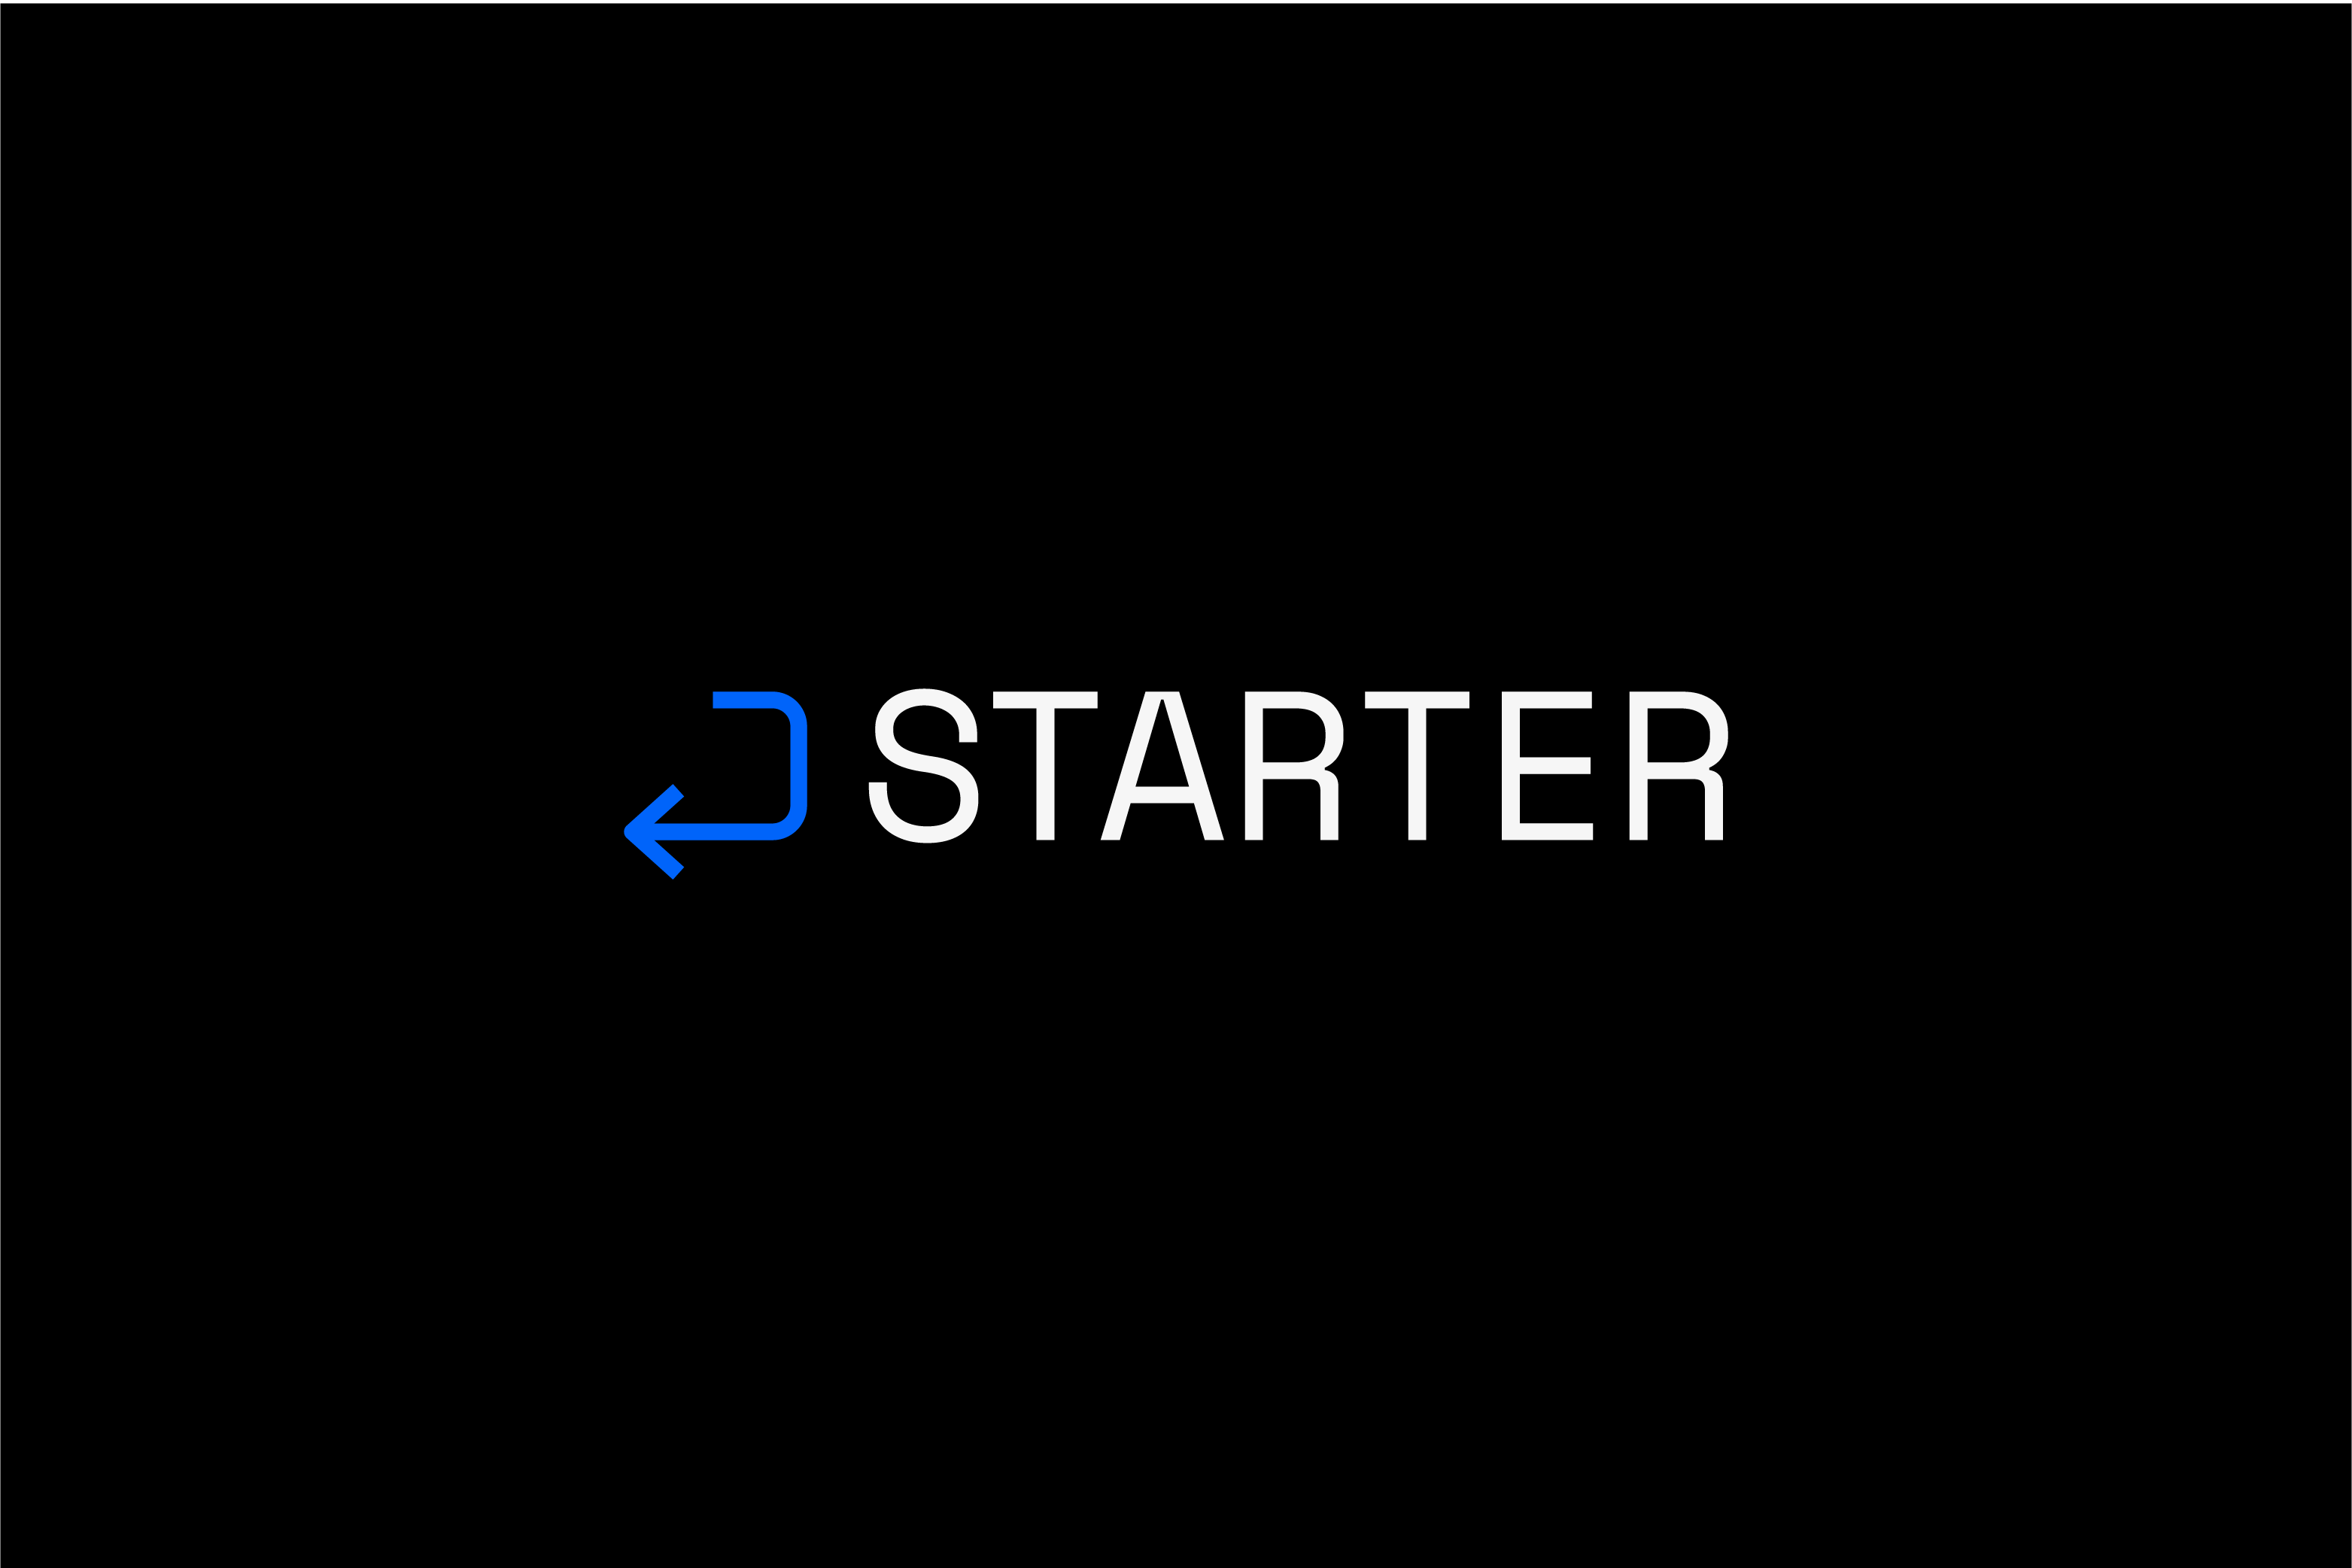 bp_starter_visual_logo_negative